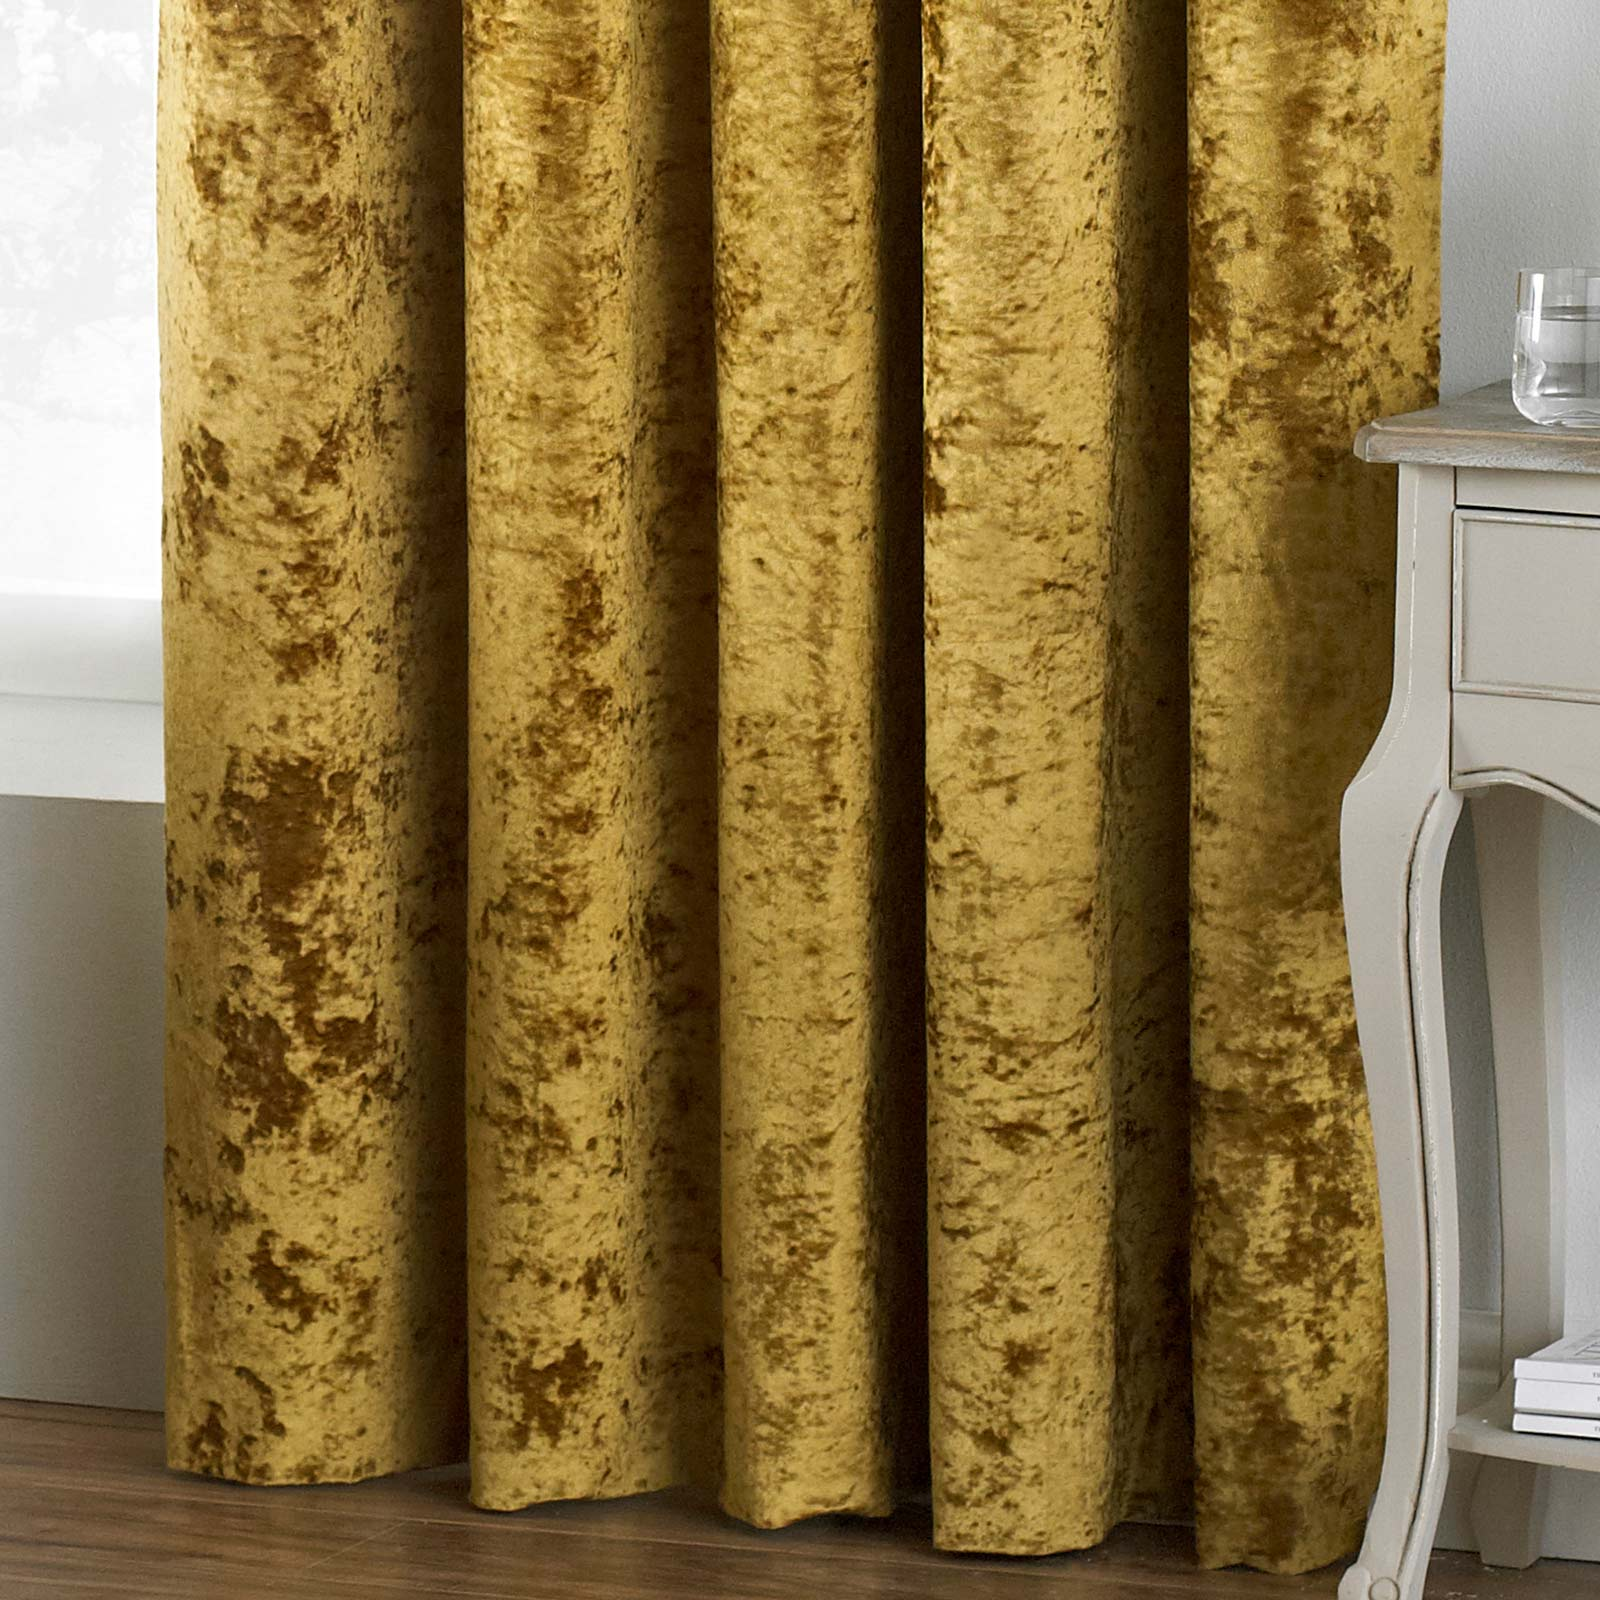 Verona Crushed Velvet Lined Eyelet Curtains Ochre -  - Ideal Textiles